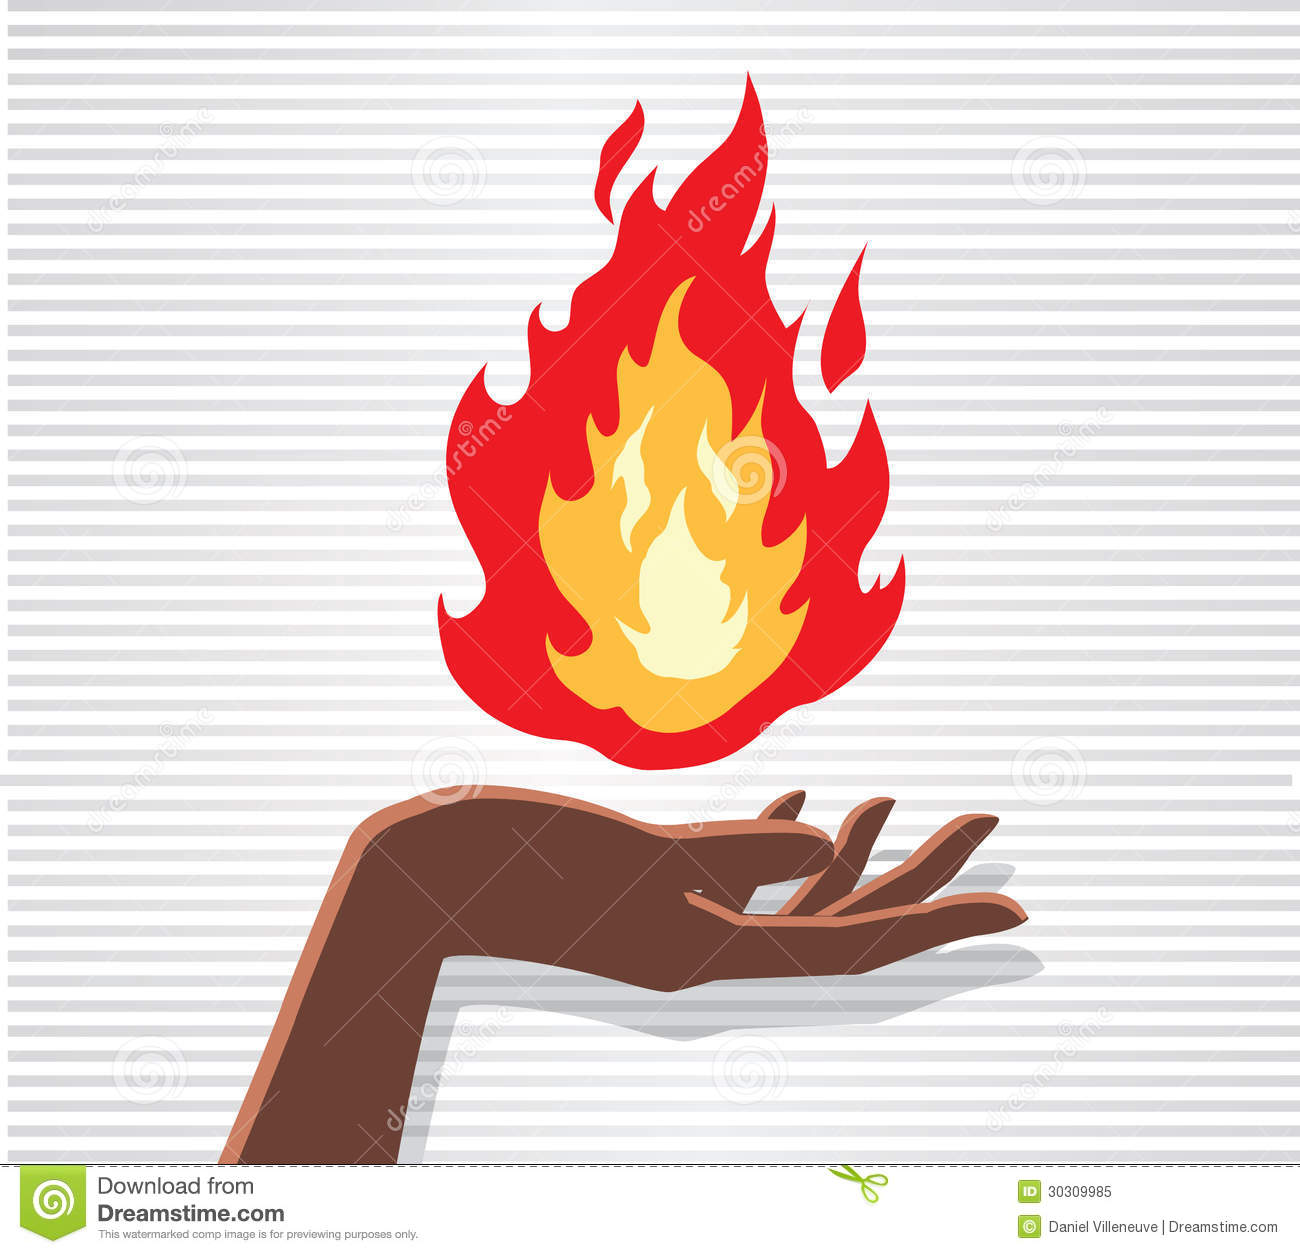 Heat clipart drawing Energy Drawings heat fire Drawing